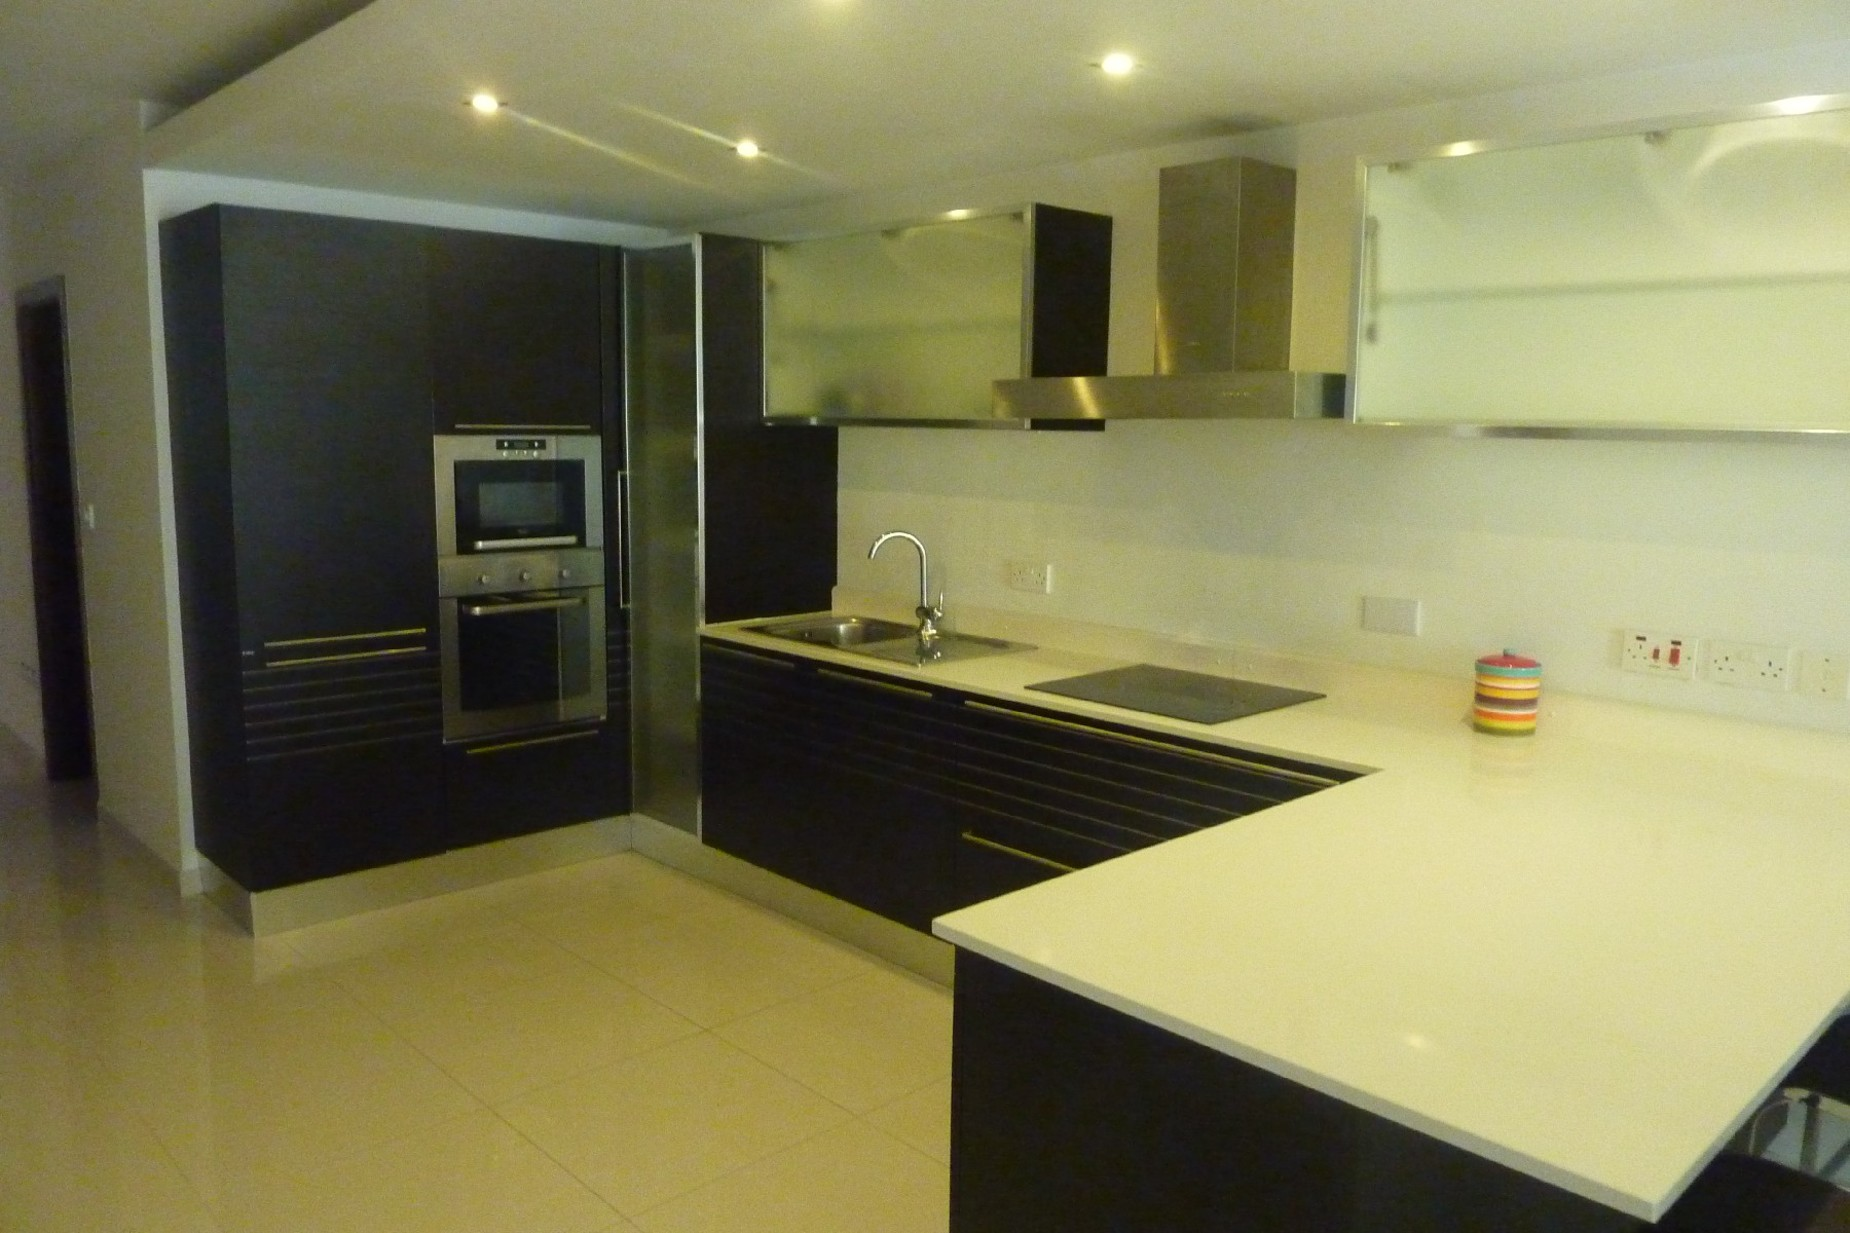 3 bed Apartment For Rent in Madliena, Madliena - thumb 3